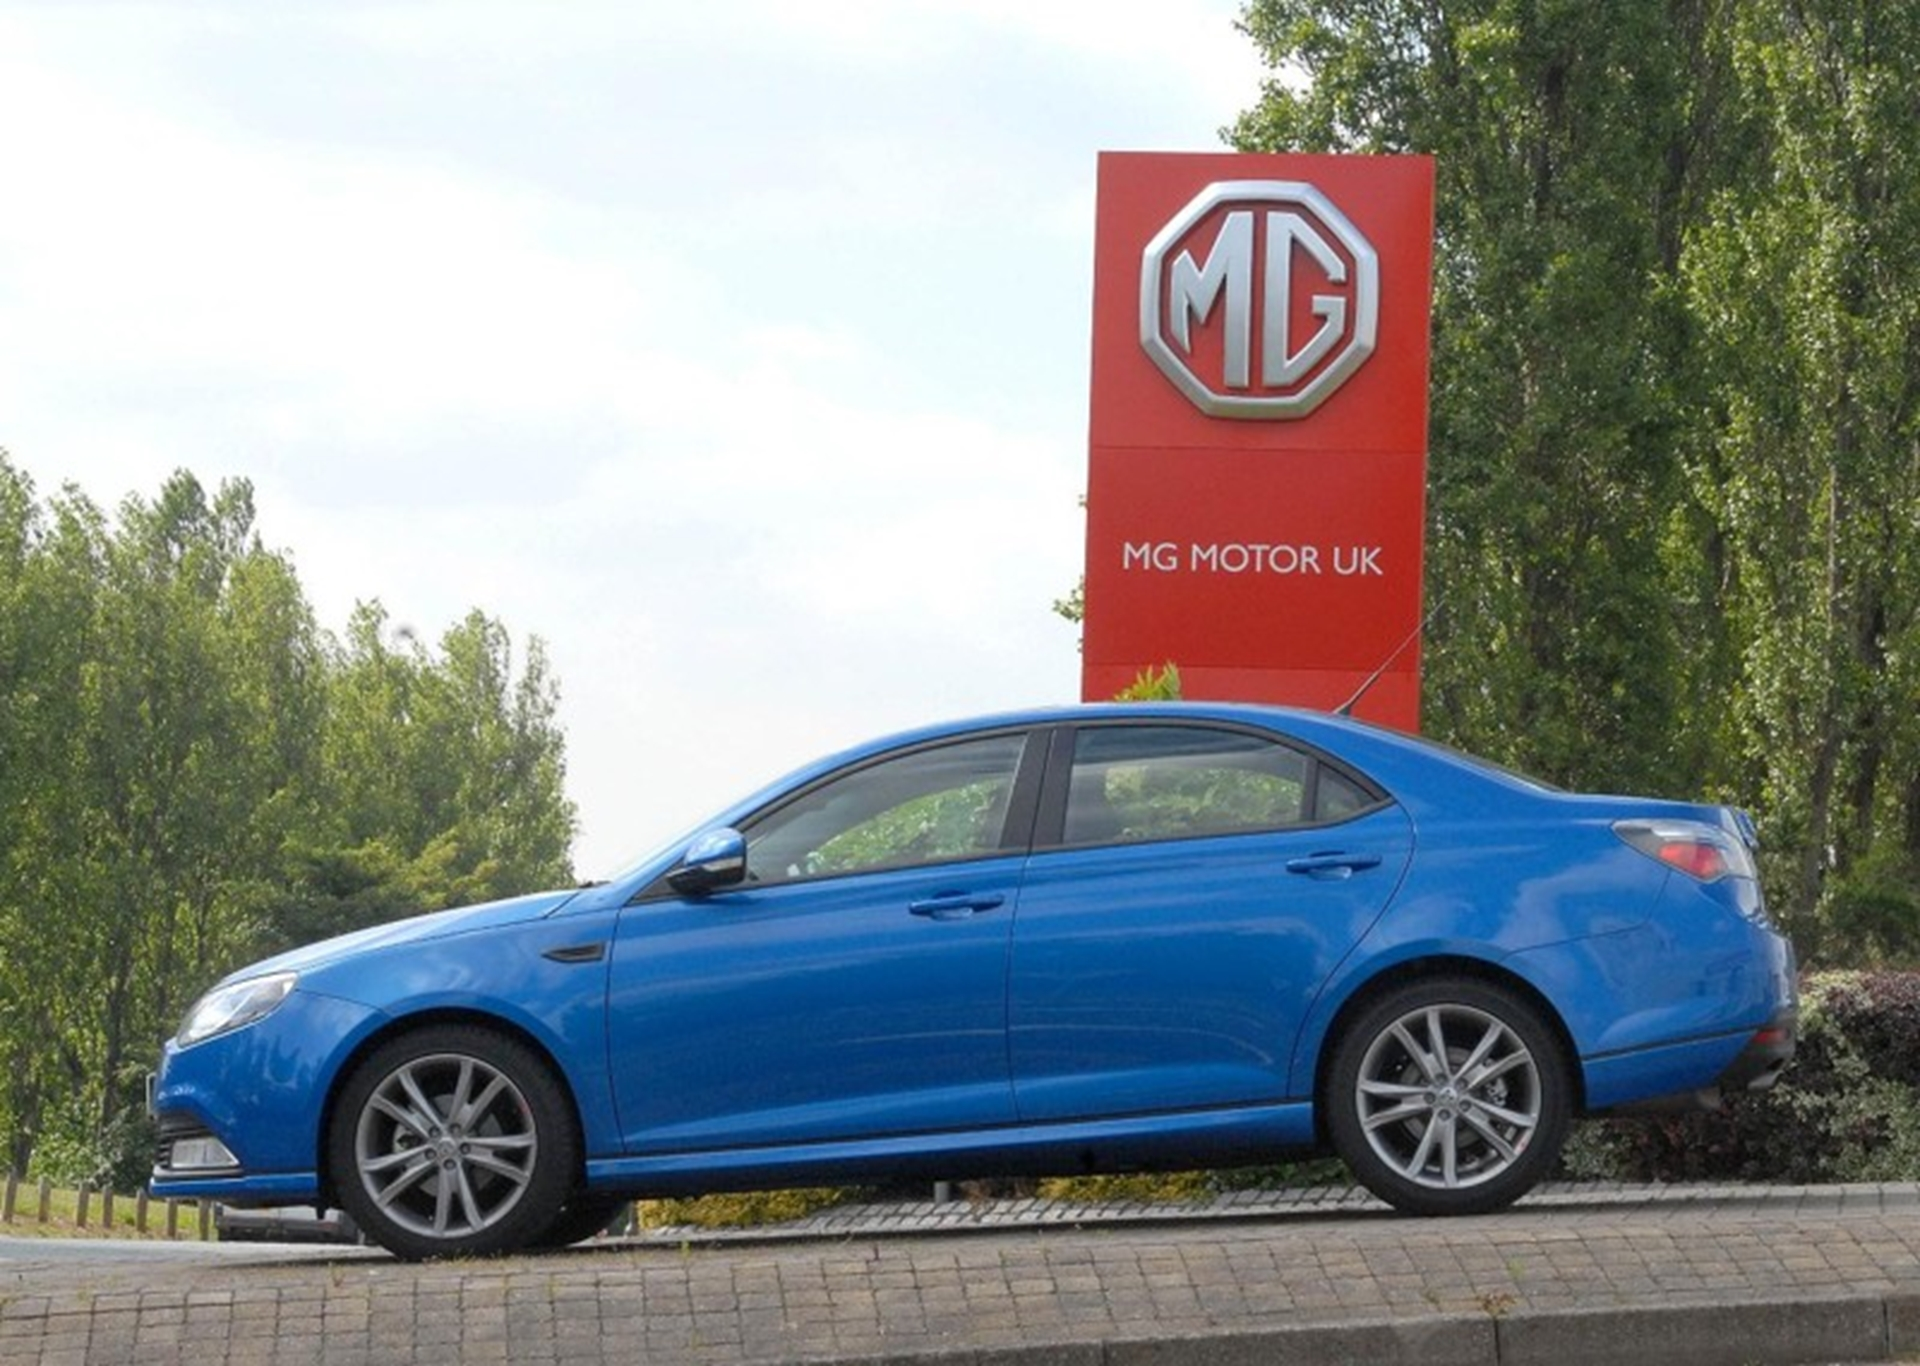 MG Dealership